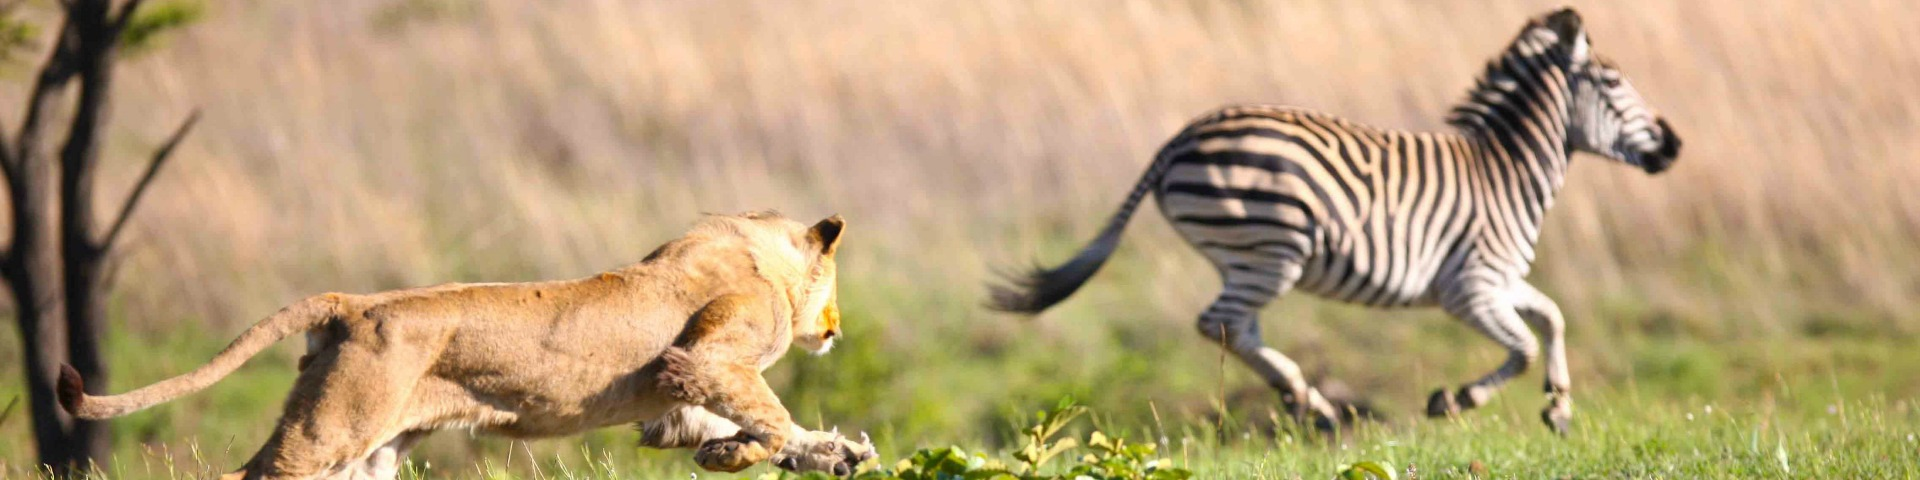 Lion Chasing Zebra At The Maasai Mara